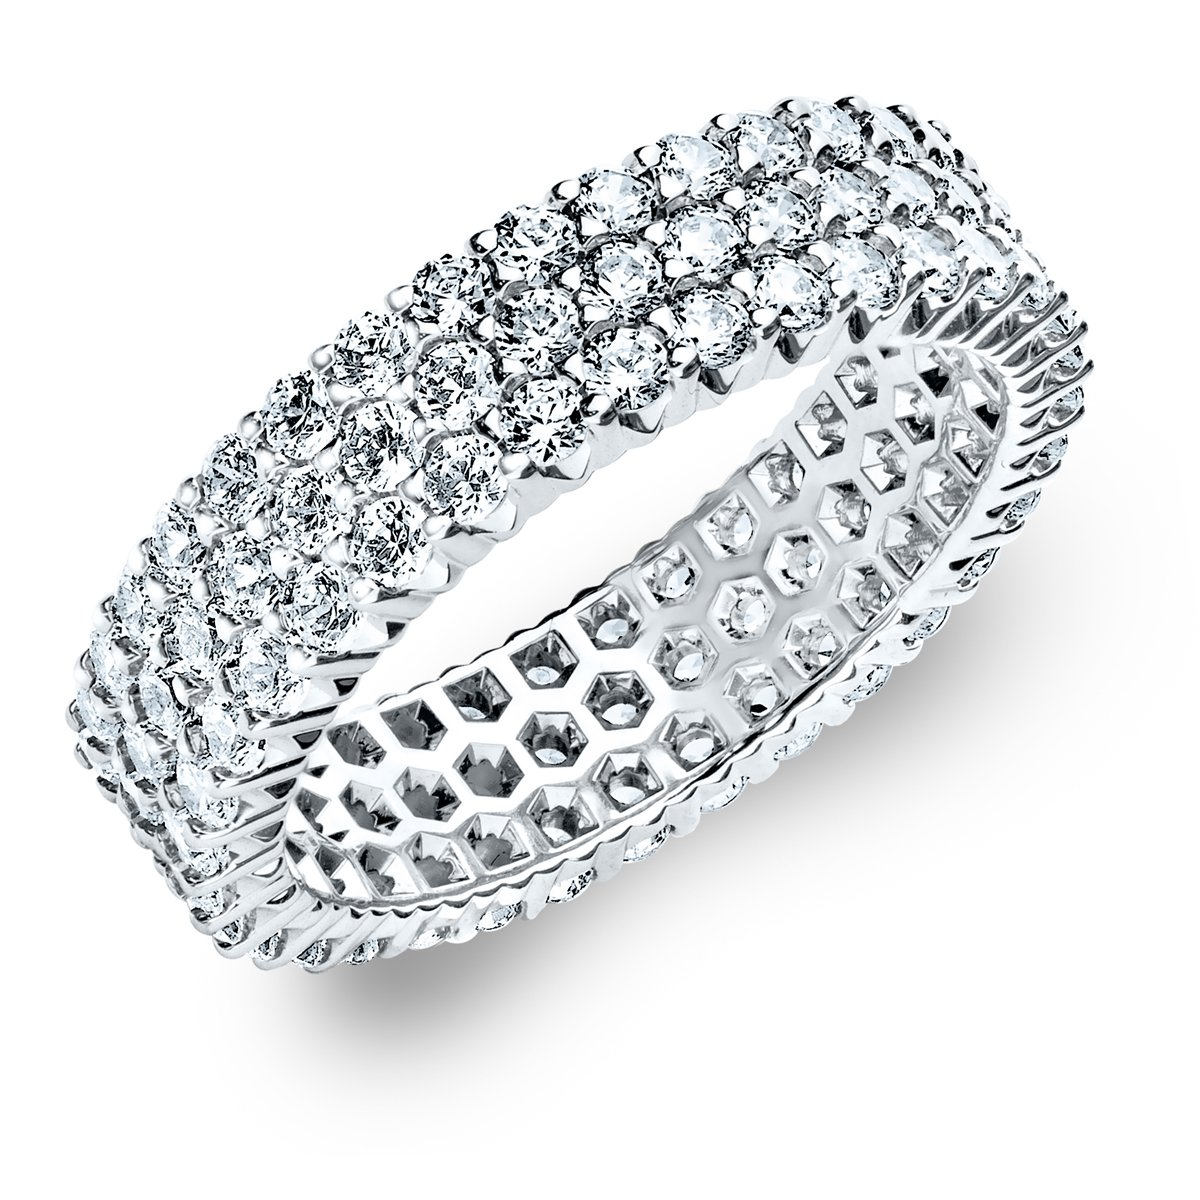 14K White Gold Diamond 3-Row Eternity Ring (1.5 cttw, G-H Color, SI1-SI2 Clarity) Size 6.5